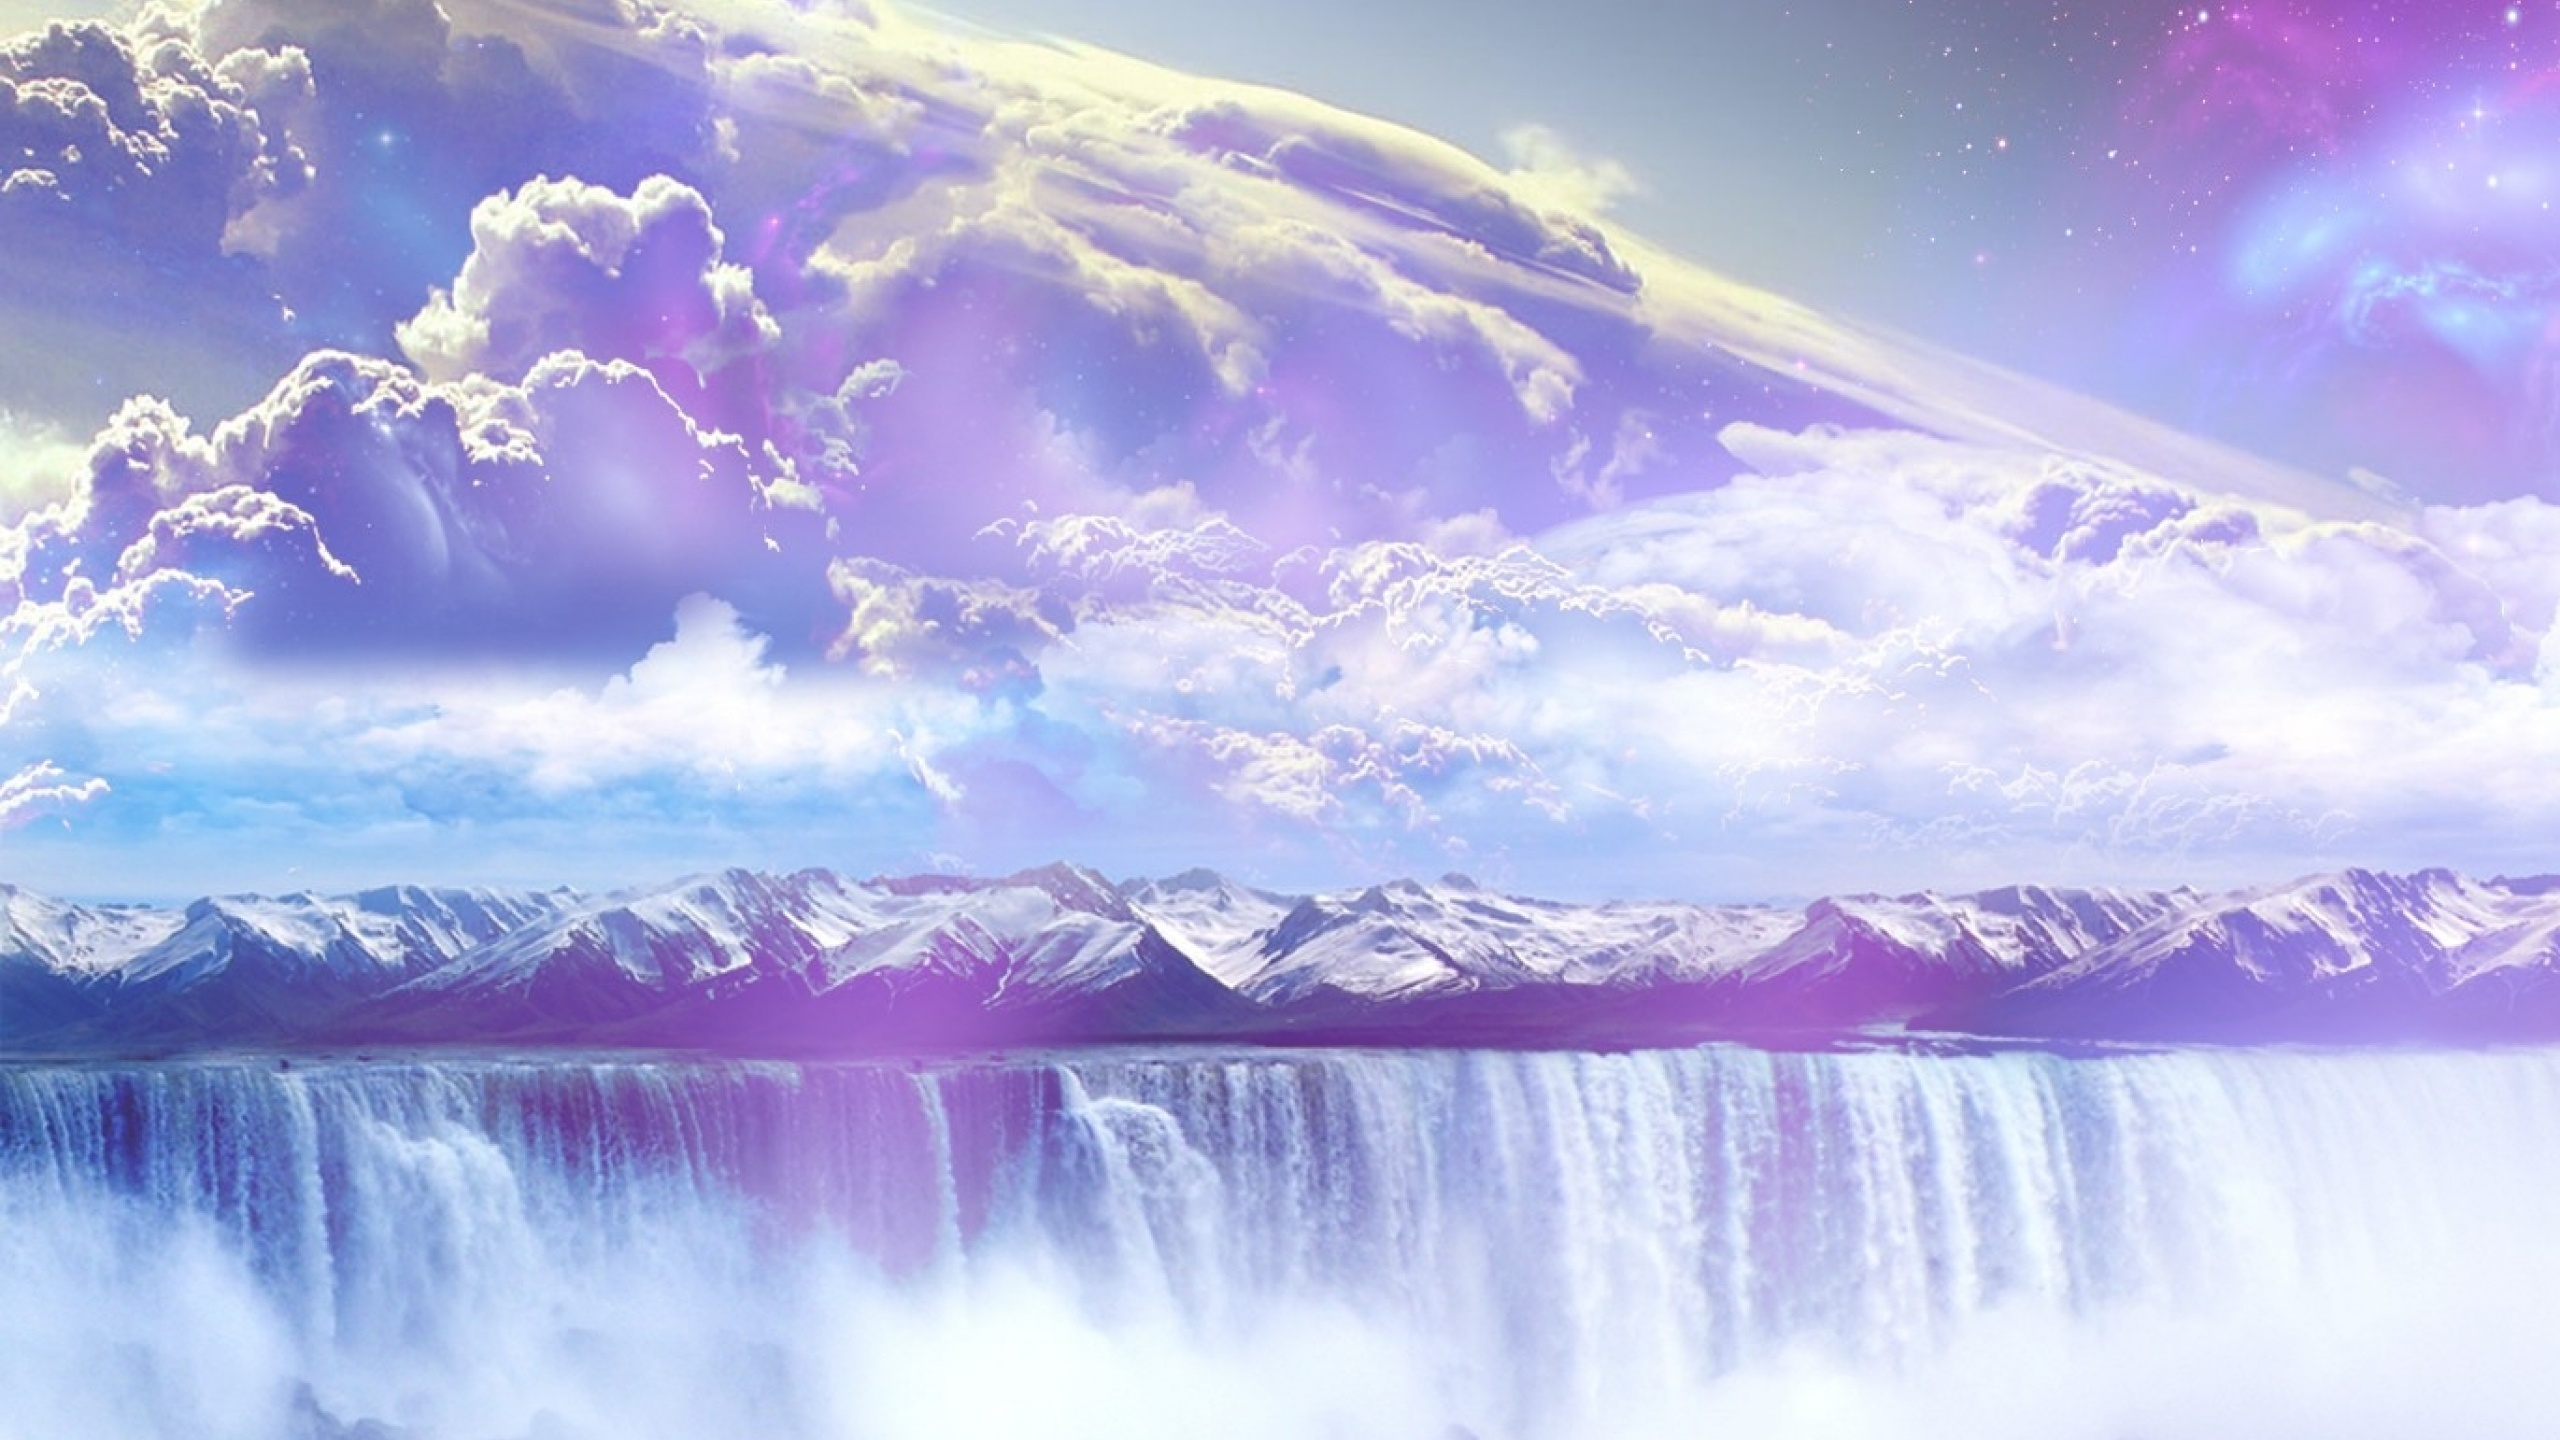 2560x1440 Galaxy Waterfall Mountains Sky desktop PC and Mac wallpaper 2560x1440